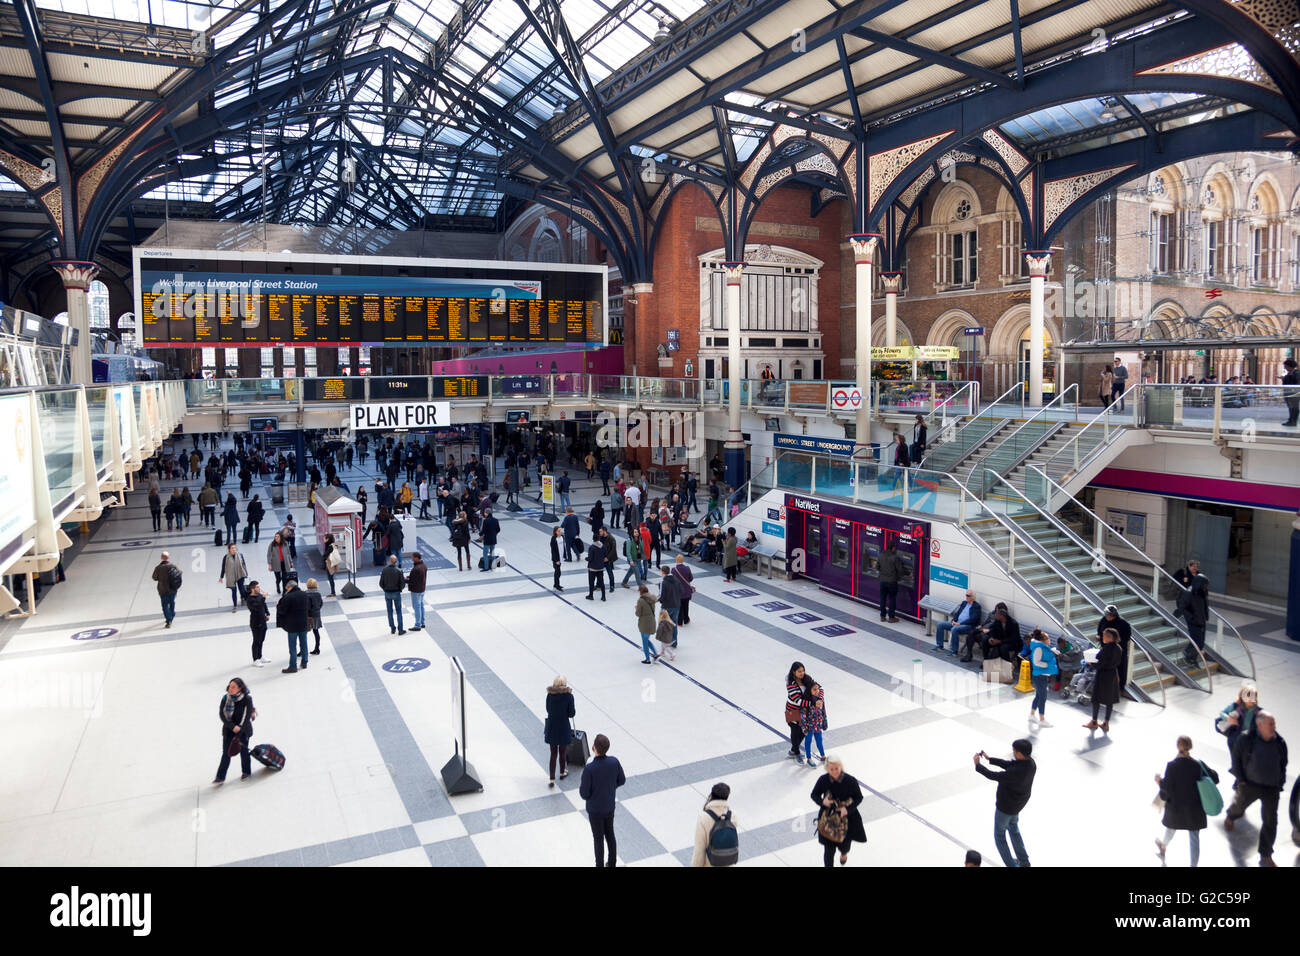 Liverpool Street Station train and underground concourse, London, UK - Stock Image